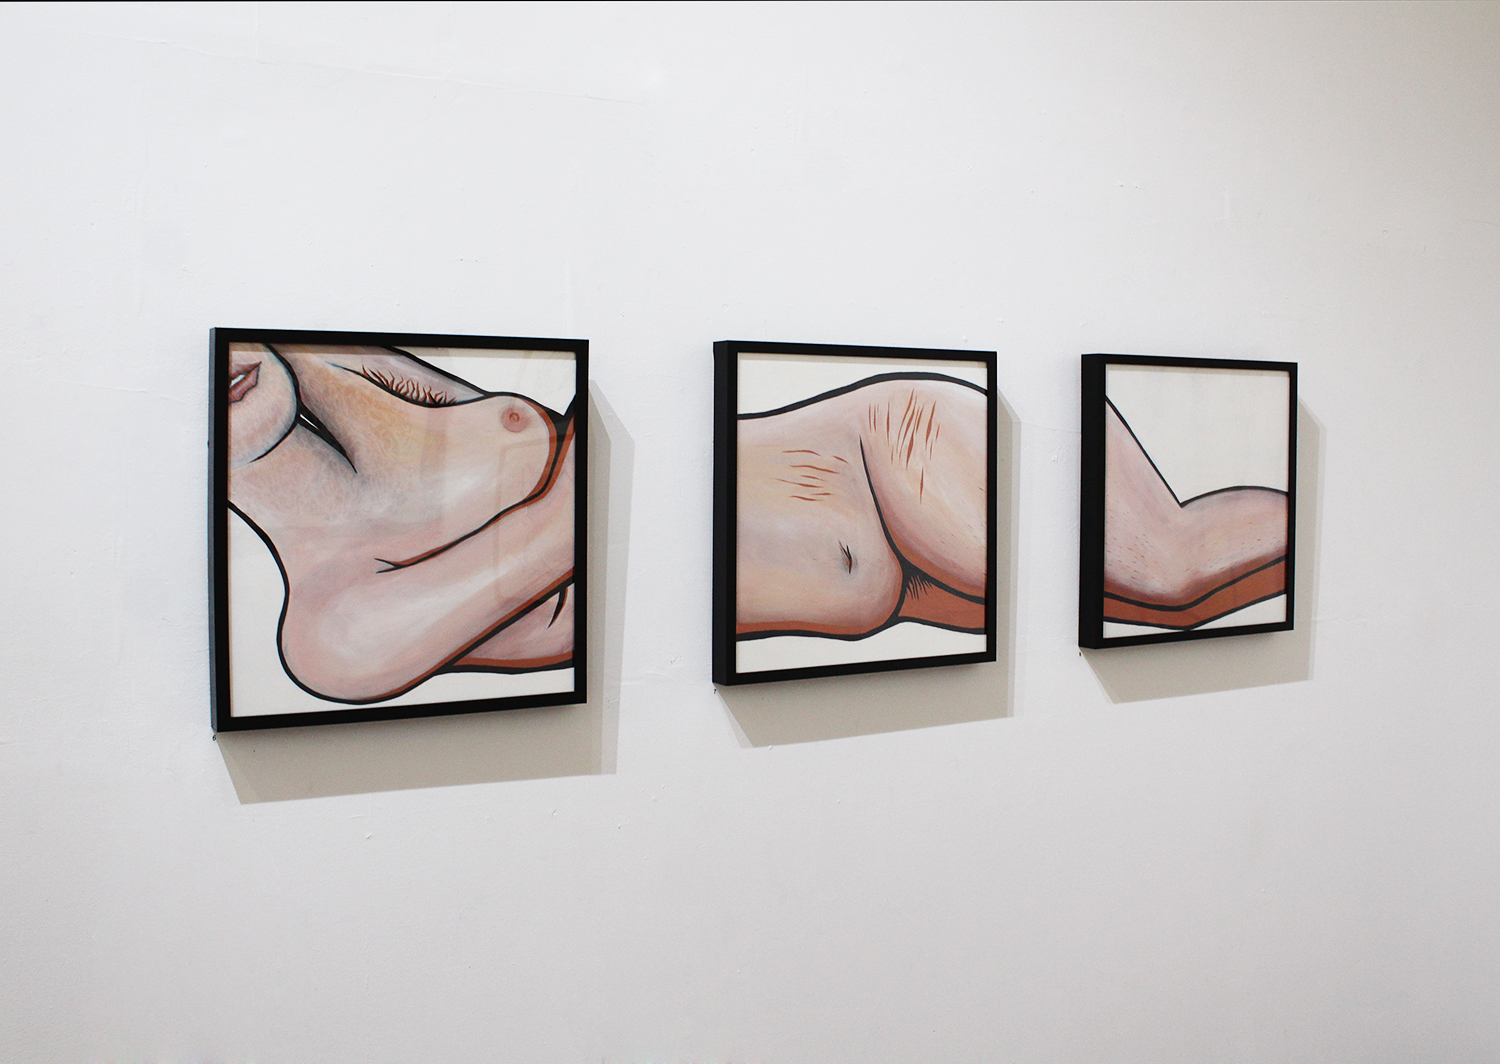 Aileen Ng, 'Woman 1', 'Woman 2', 'Woman 3', acrylic painting, 50x50cm $100 each